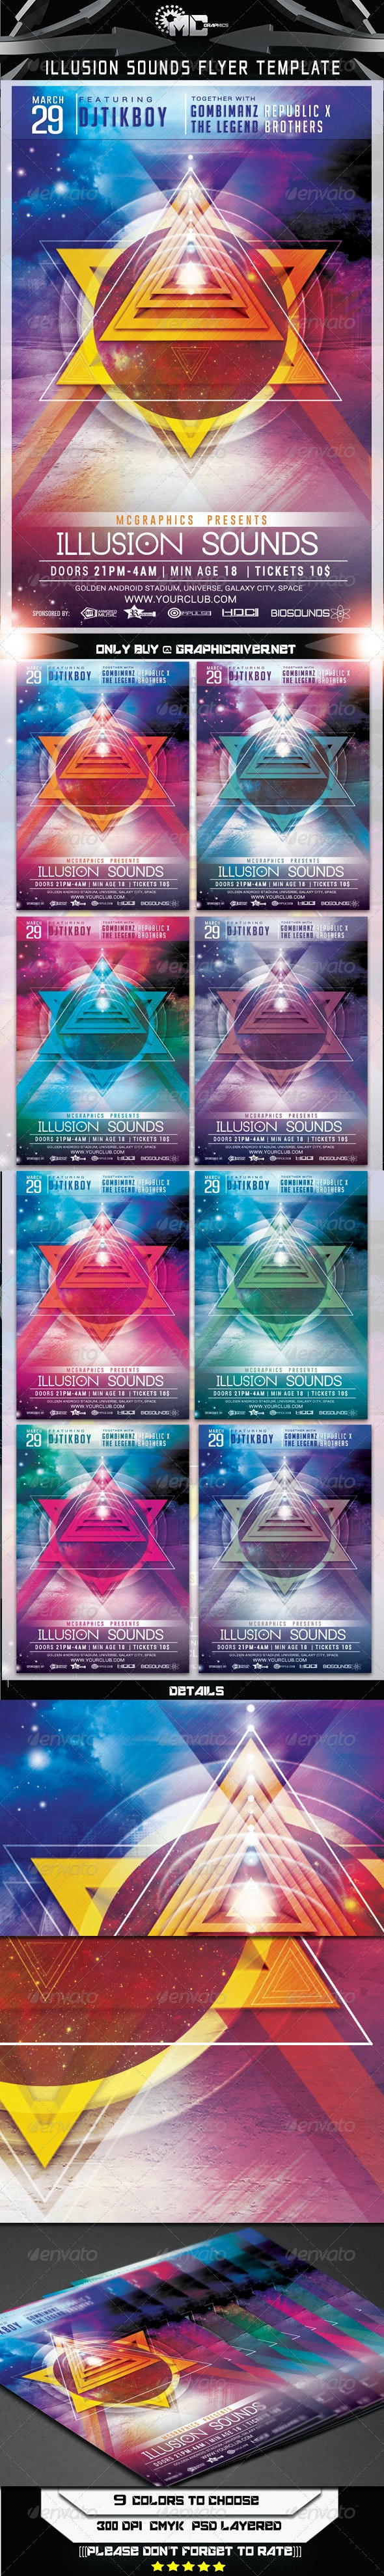 Illusion Sounds Flyer Template - Clubs & Parties Events